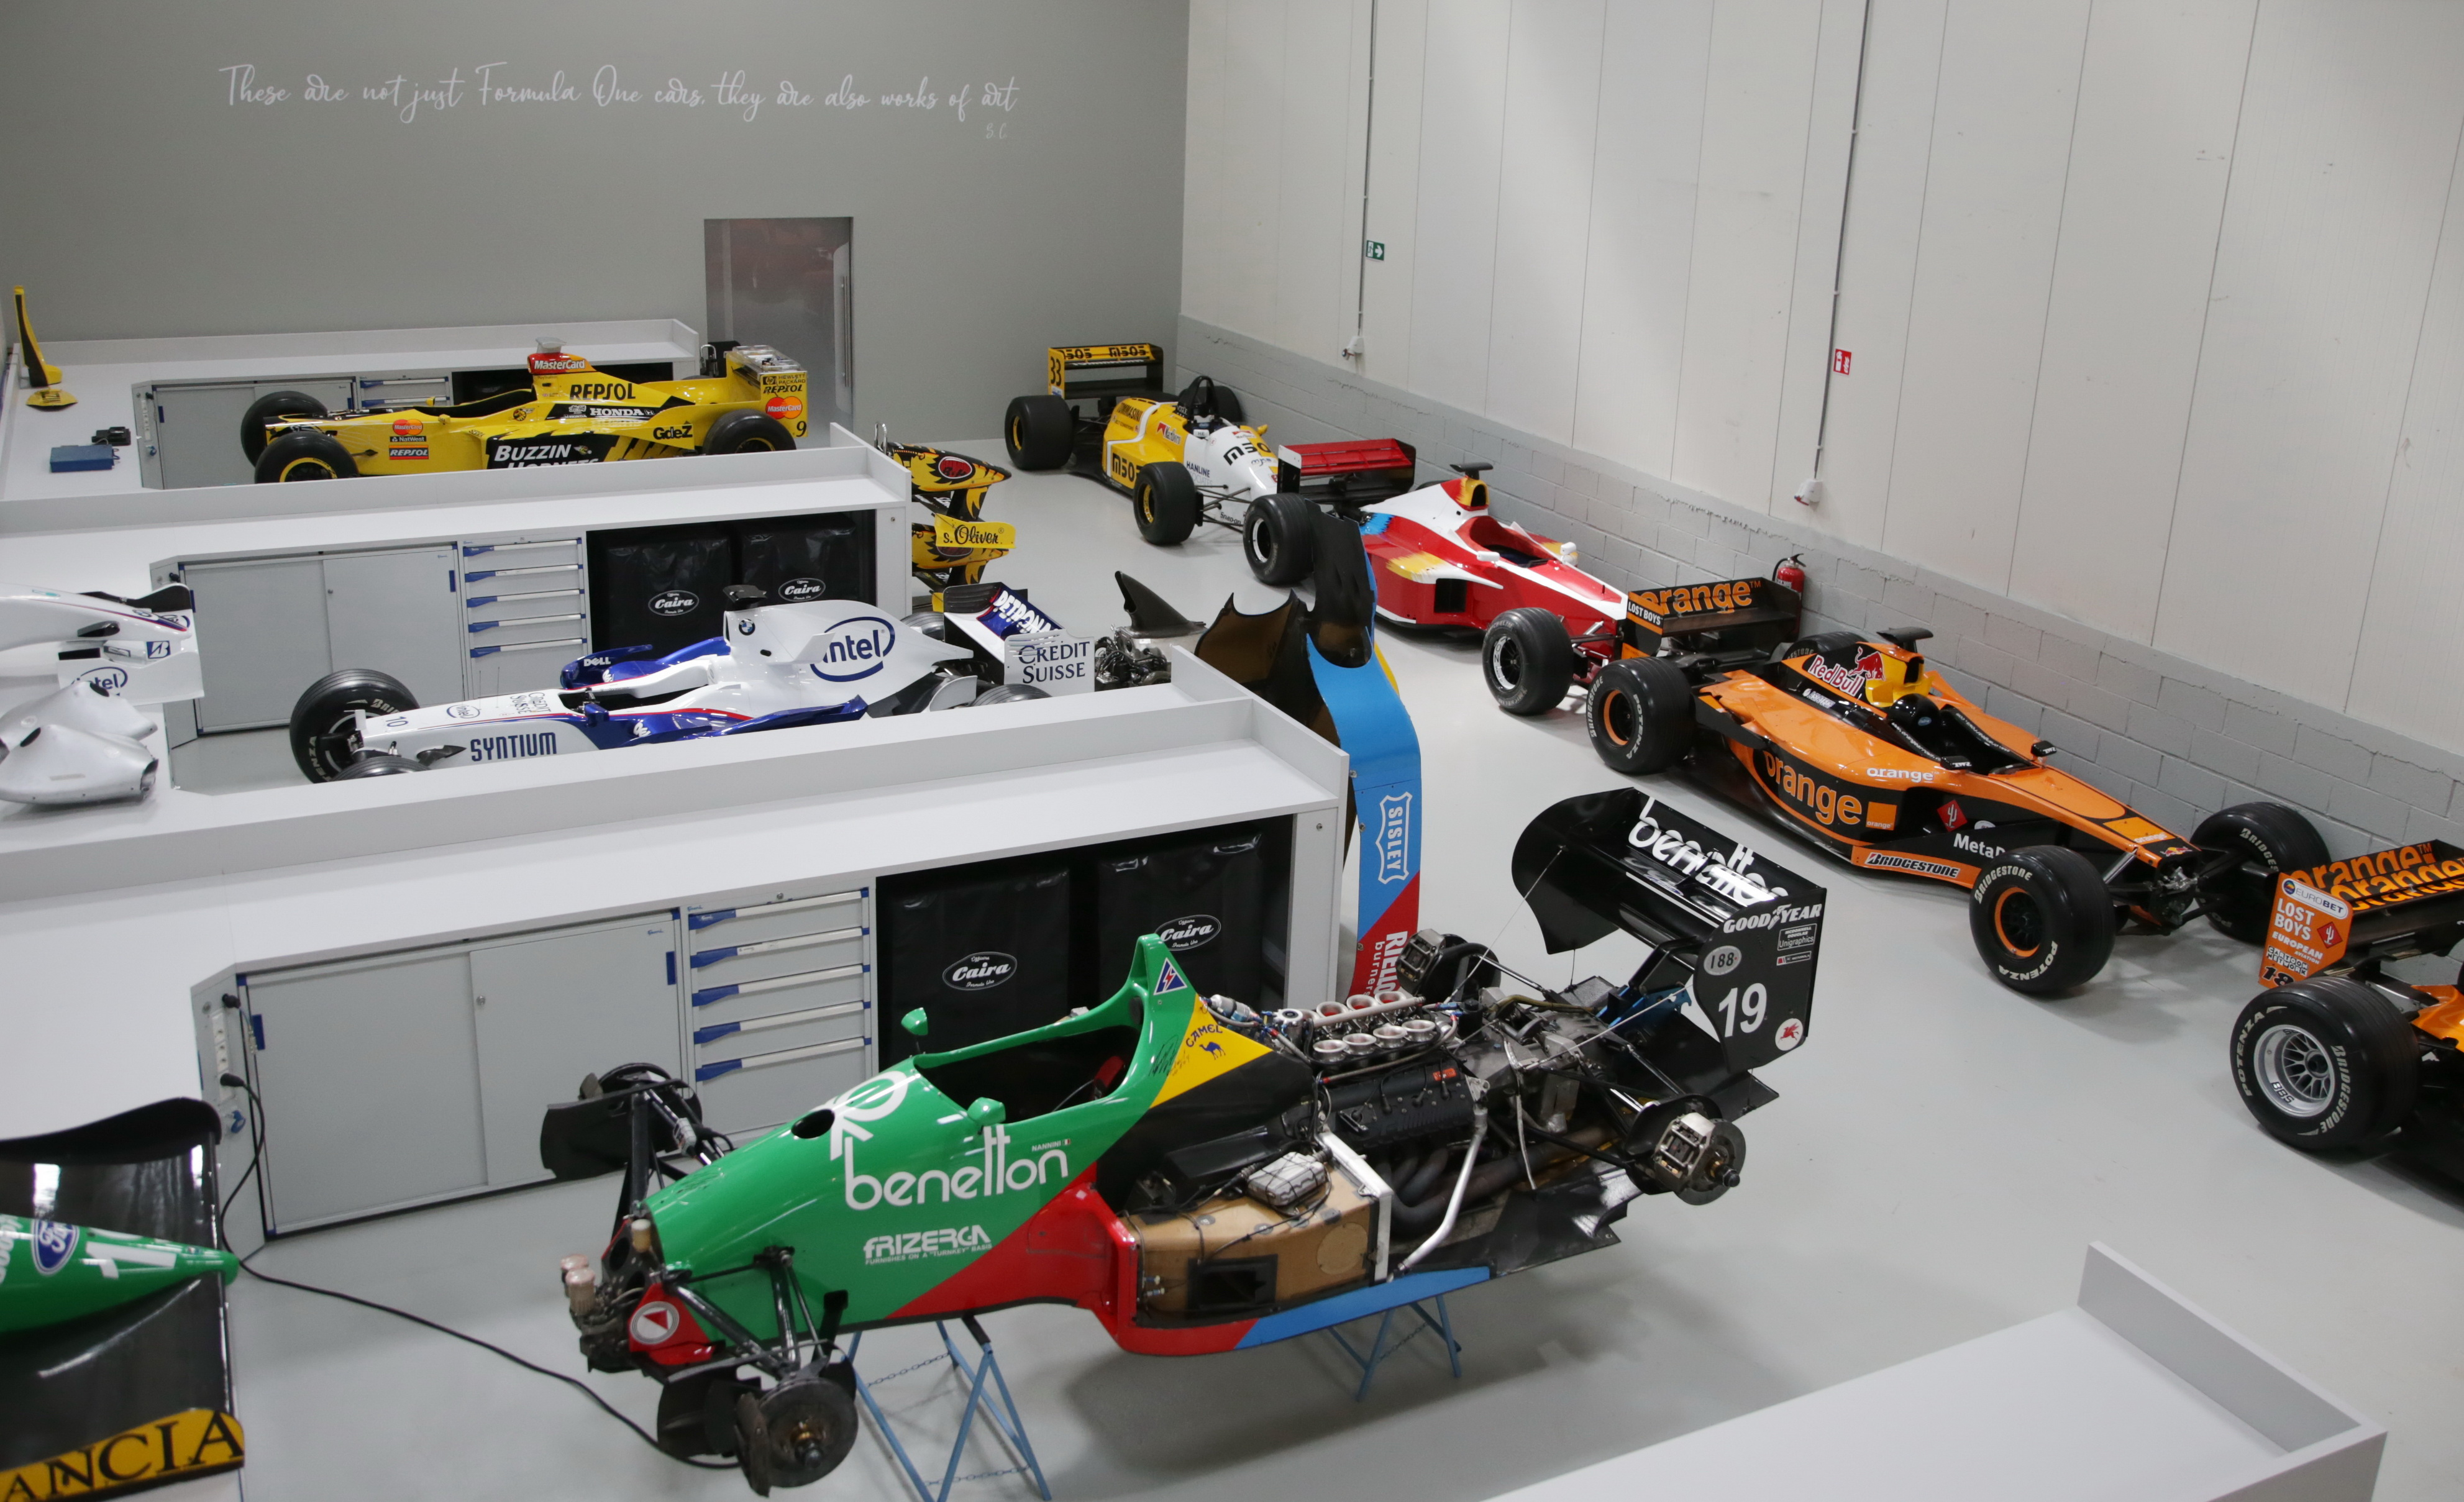 Officina Caira Formulation One, the Belgian workshop that maintains the F1 heritage